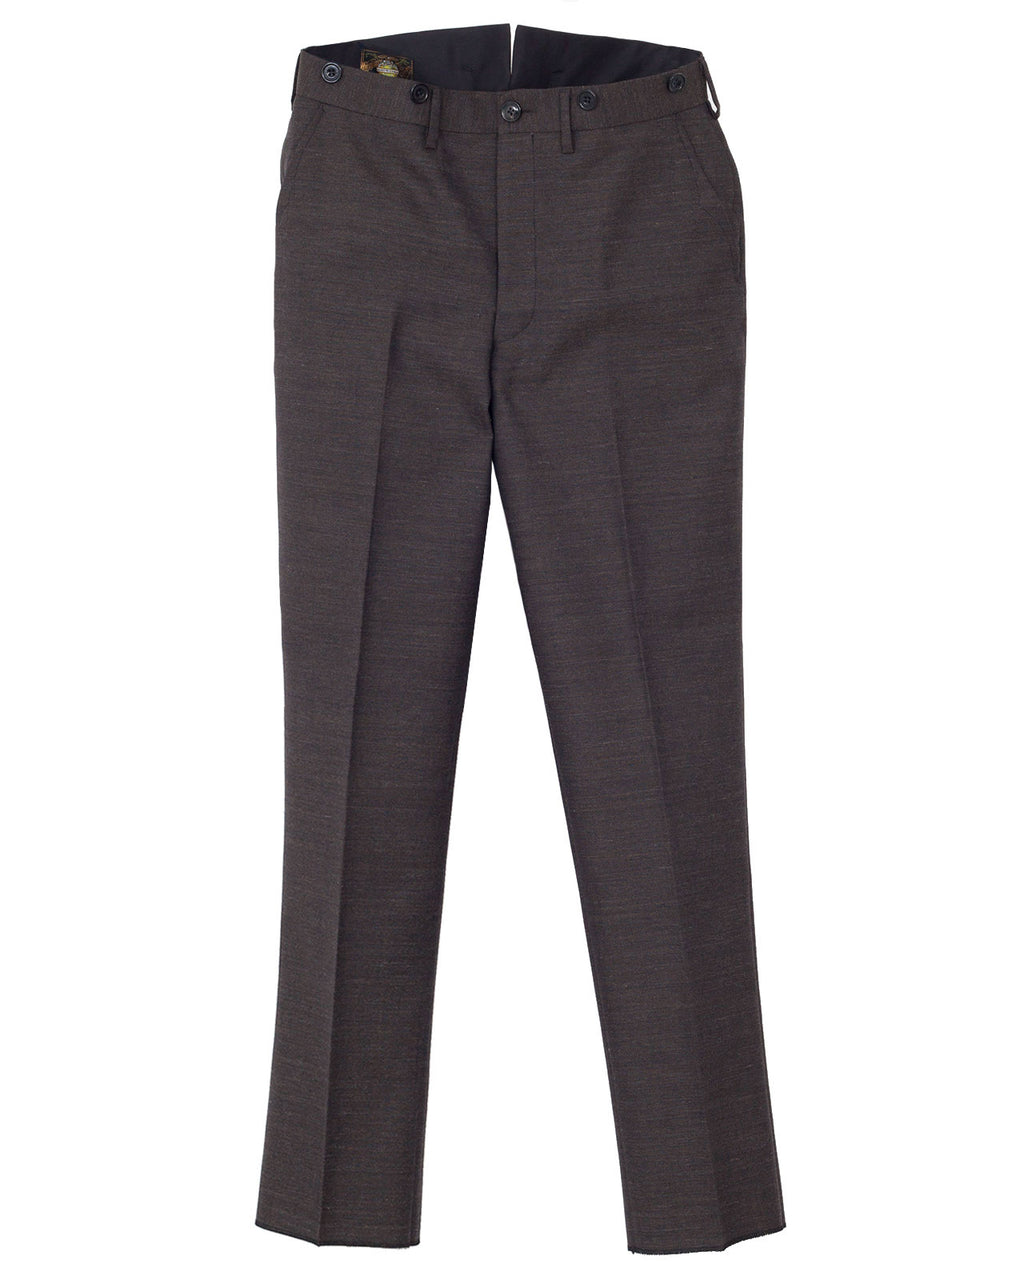 Freewheelers Parker Trousers, Olive Grey